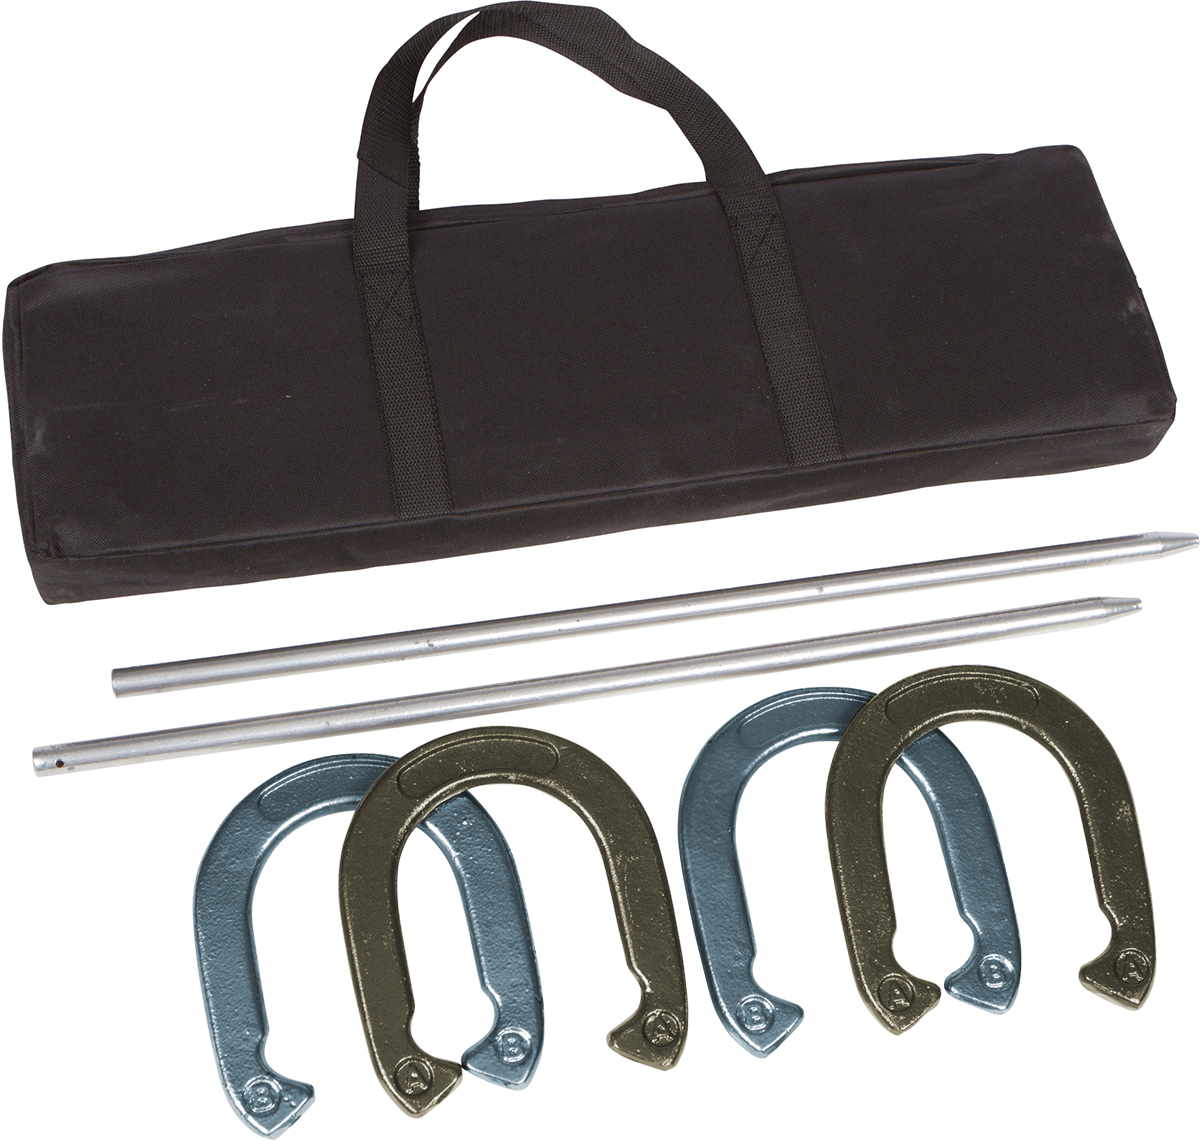 Pro Horseshoe Set - Powder Coated Steel with Carry Case By Trademark Innovations (Gold and Silver)